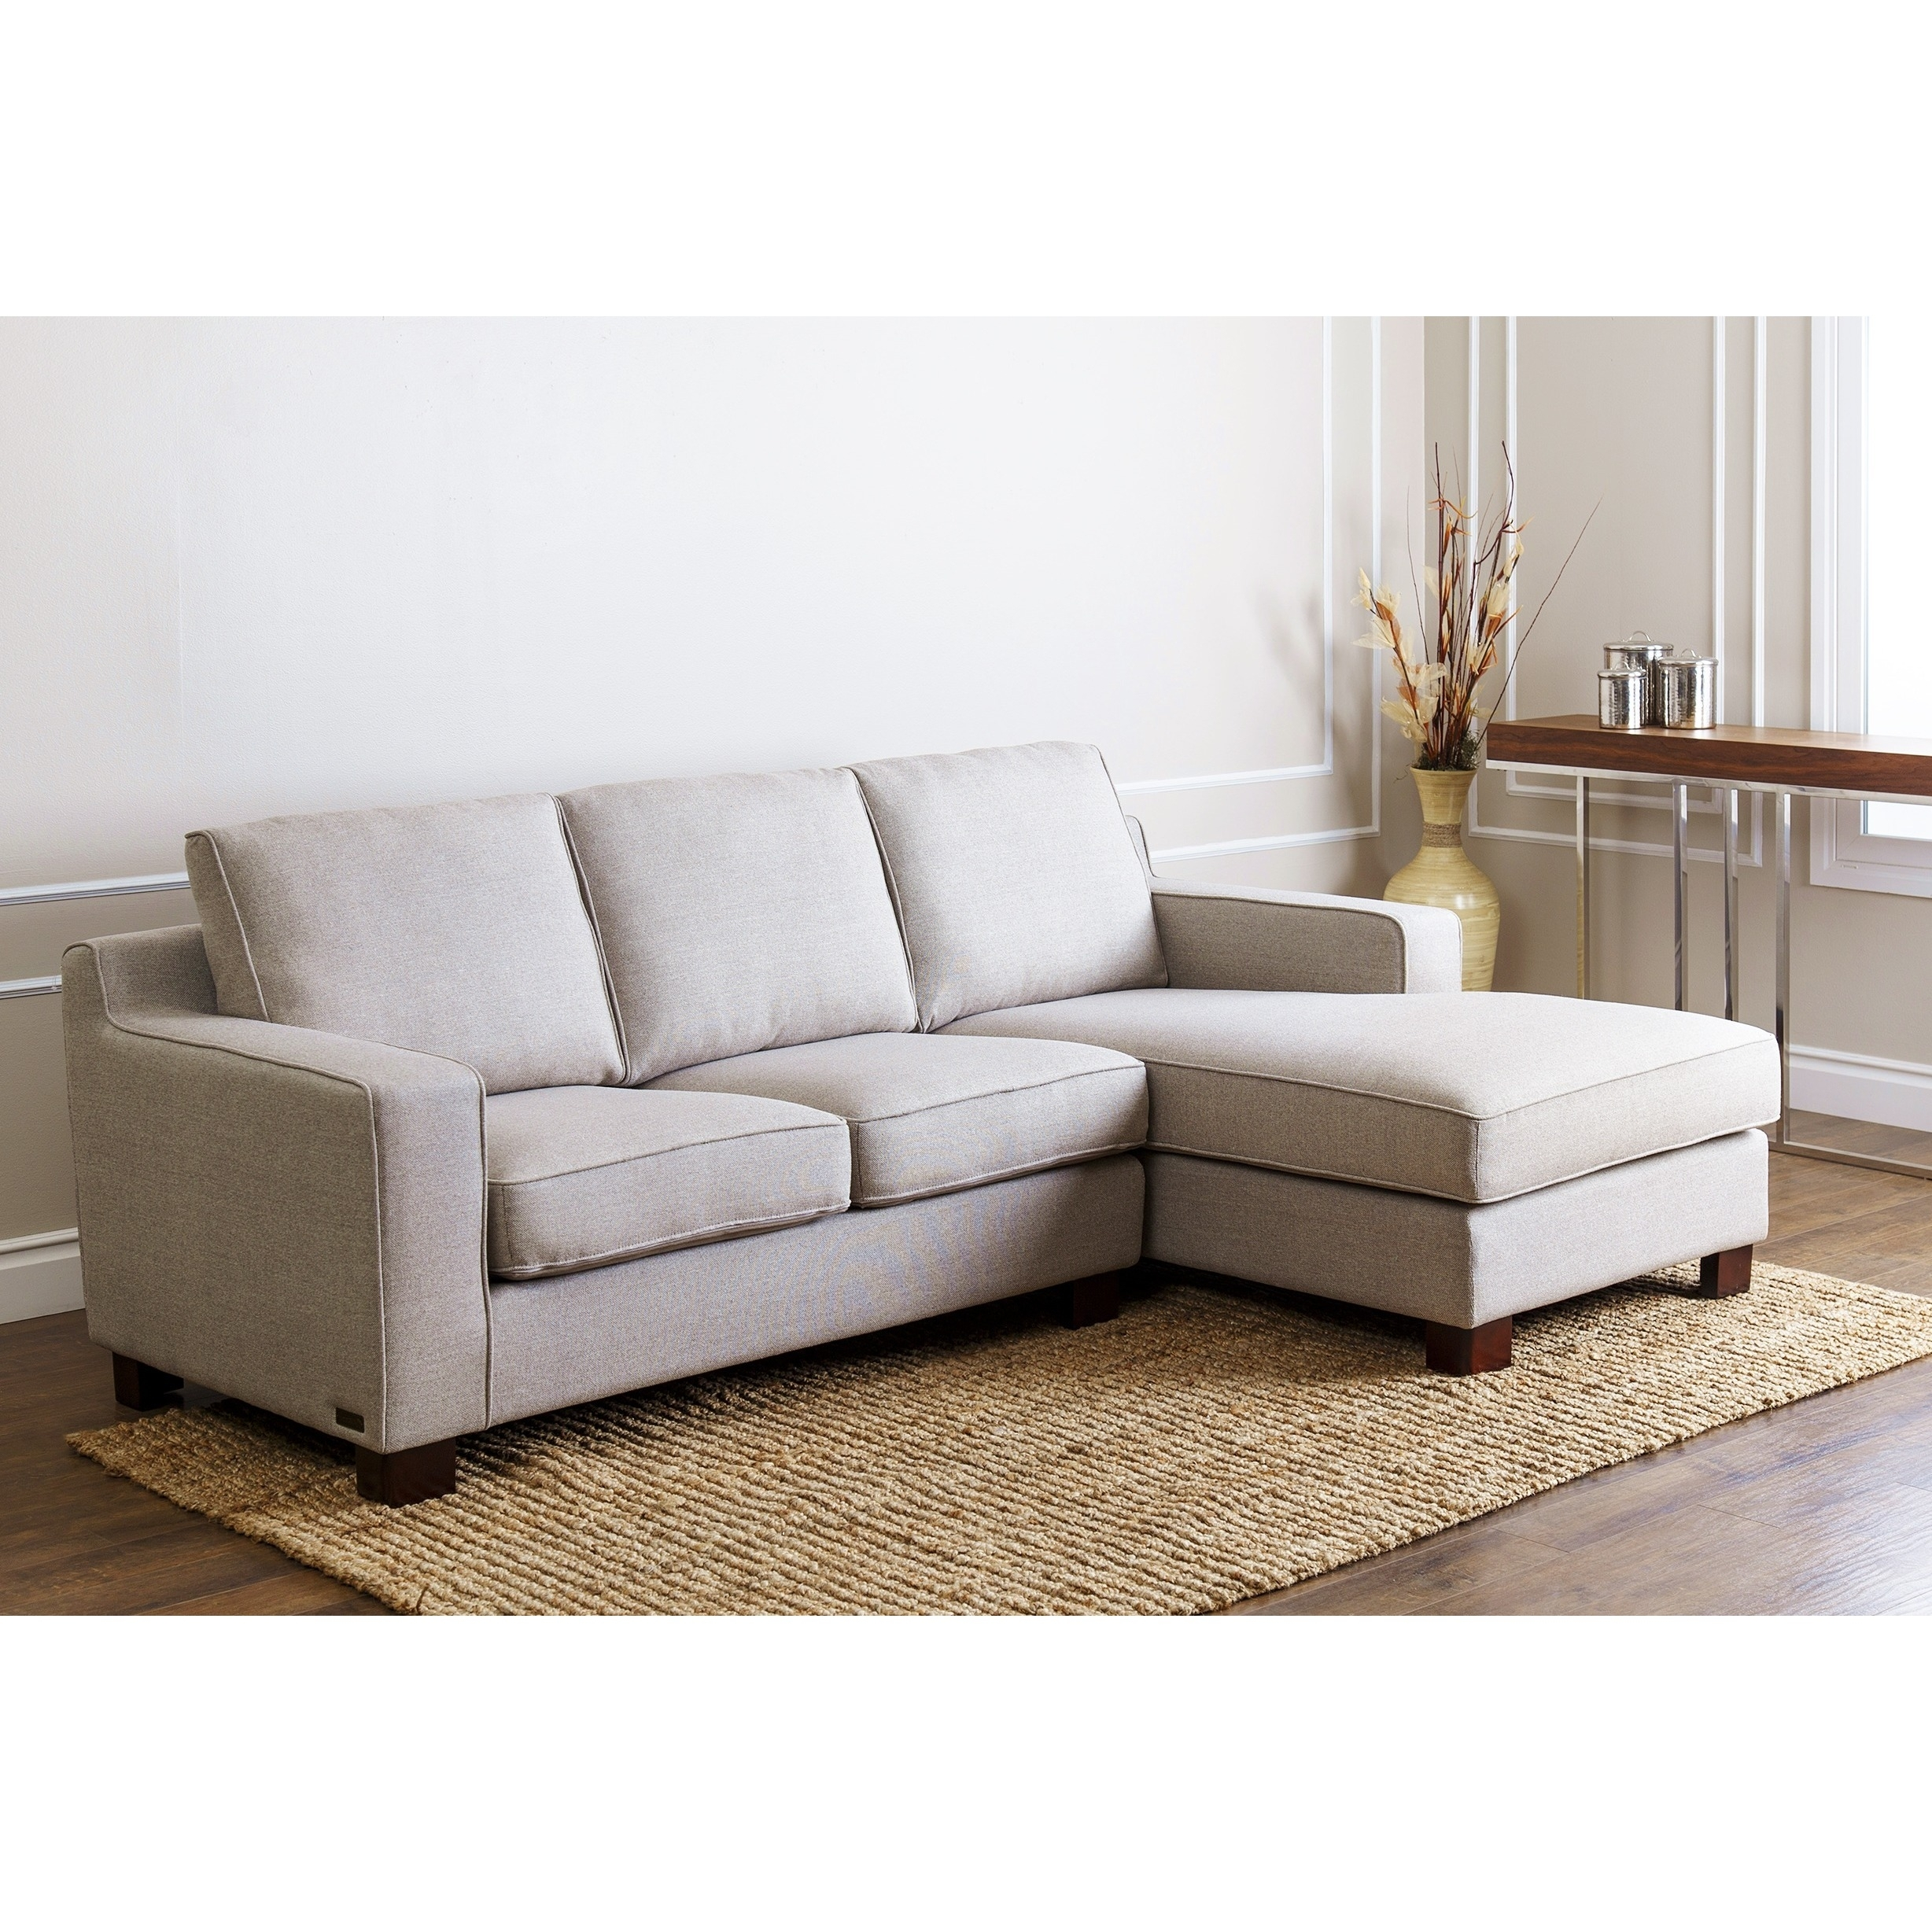 Light Gray Fabric Sectional Chaise Couch Which Combined With with Overstock Sectional Sofas (Image 8 of 10)